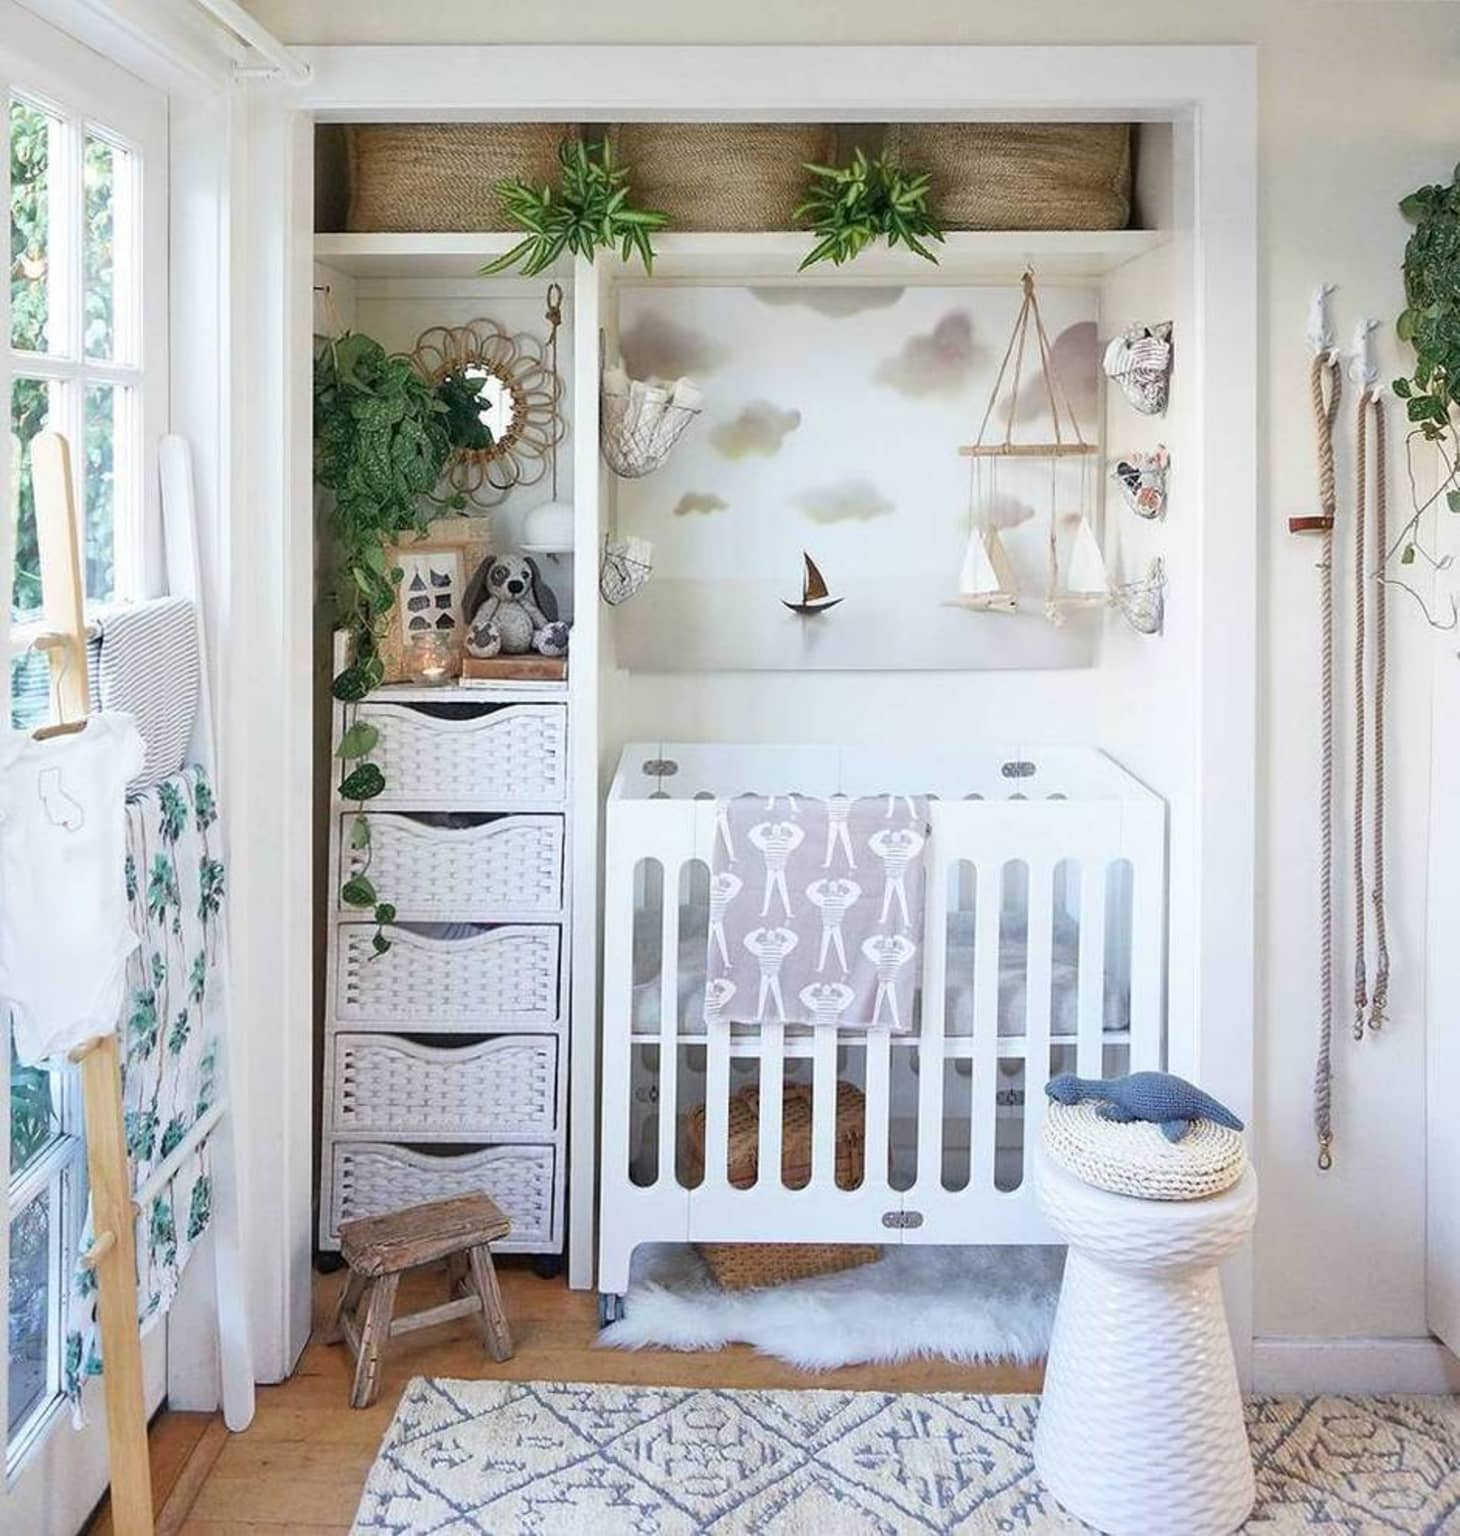 How to Fit a Nursery Into Your Very Small Space | Apartment ...